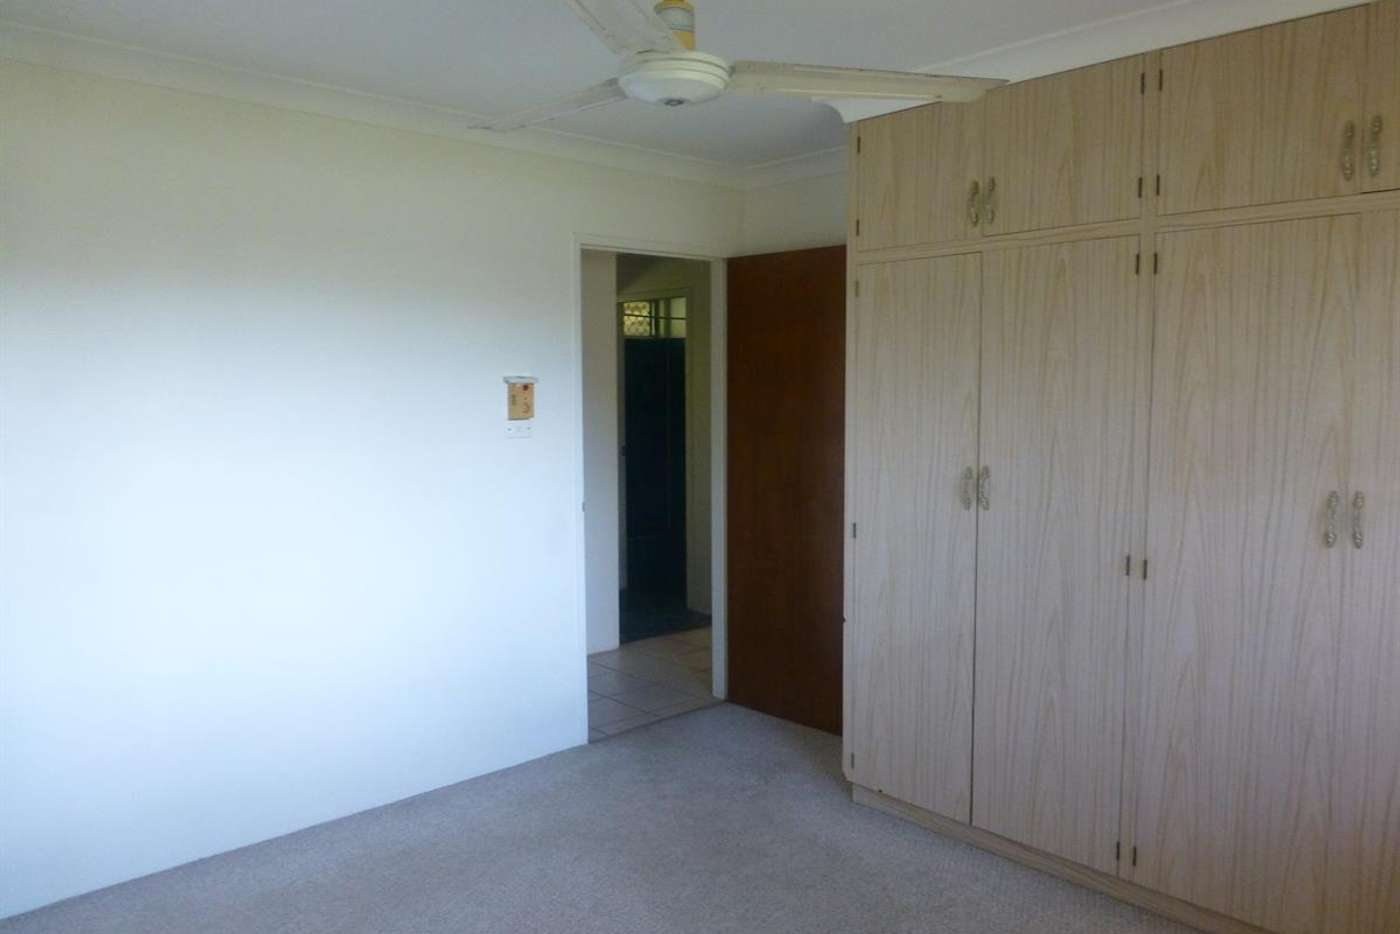 Sixth view of Homely house listing, 21 Cairns Road, Gordonvale QLD 4865